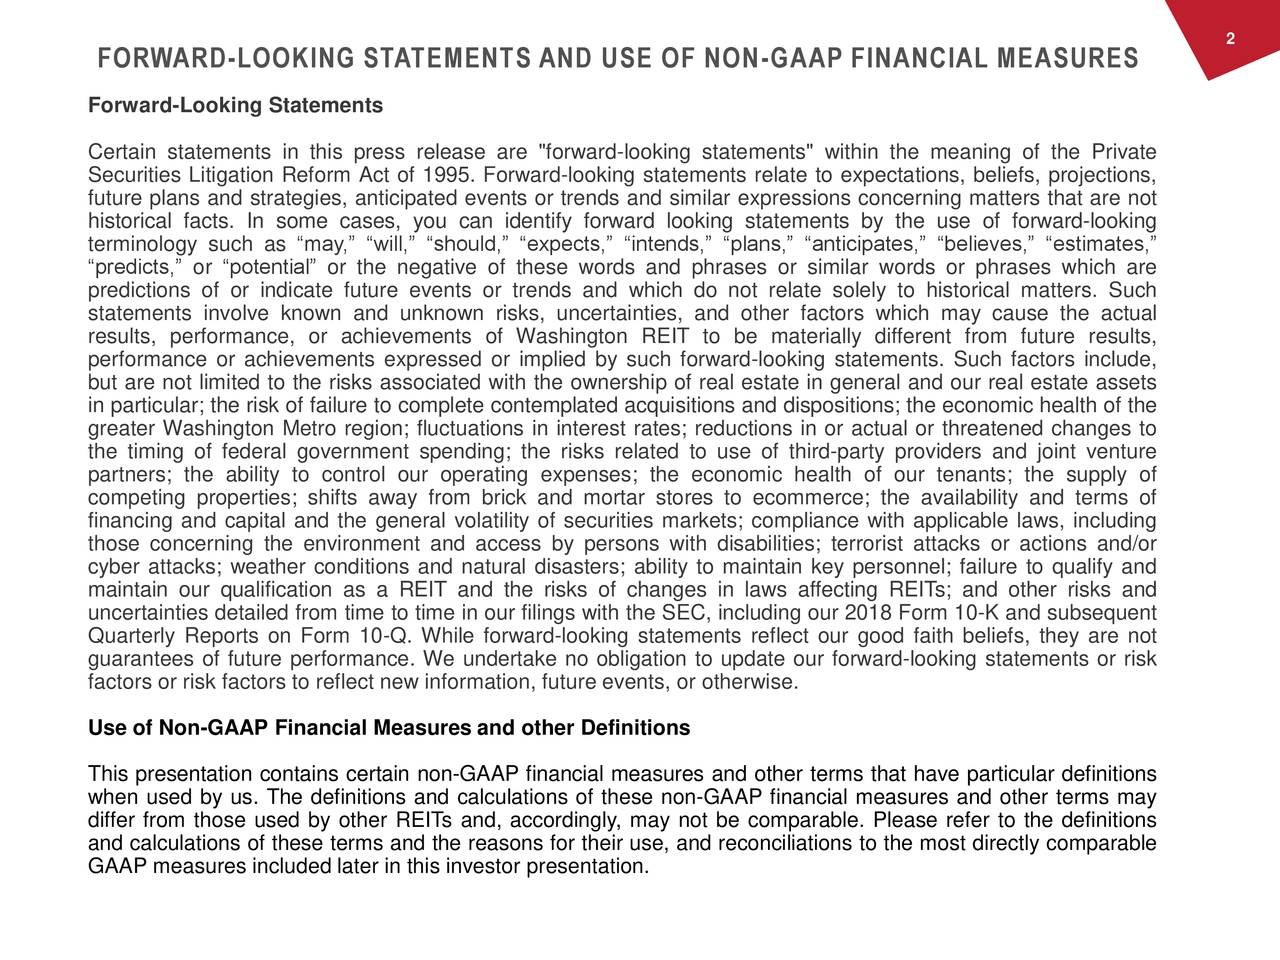 "FORWARD-LOOKING STATEMENTS AND USE OF NON-GAAP FINANCIAL MEASURES Forward-Looking Statements Certain statements in this press release are ""forward-looking statements"" within the meaning of the Private Securities Litigation Reform Act of 1995. Forward-looking statements relate to expectations, beliefs, projections, future plans and strategies, anticipated events or trends and similar expressions concerning matters that are not historical facts. In some cases, you can identify forward looking statements by the use of forward-looking terminology such as ""may,"" ""will,"" ""should,"" ""expects,"" ""intends,"" ""plans,"" ""anticipates,"" ""believes,"" ""estimates,"" ""predicts,"" or ""potential"" or the negative of these words and phrases or similar words or phrases which are predictions of or indicate future events or trends and which do not relate solely to historical matters. Such statements involve known and unknown risks, uncertainties, and other factors which may cause the actual results, performance, or achievements of Washington REIT to be materially different from future results, performance or achievements expressed or implied by such forward-looking statements. Such factors include, but are not limited to the risks associated with the ownership of real estate in general and our real estate assets in particular; the risk of failure to complete contemplated acquisitions and dispositions; the economic health of the greater Washington Metro region; fluctuations in interest rates; reductions in or actual or threatened changes to the timing of federal government spending; the risks related to use of third-party providers and joint venture partners; the ability to control our operating expenses; the economic health of our tenants; the supply of competing properties; shifts away from brick and mortar stores to ecommerce; the availability and terms of financing and capital and the general volatility of securities markets; compliance with applicable laws, including those concerning the environment and access by persons with disabilities; terrorist attacks or actions and/or cyber attacks; weather conditions and natural disasters; ability to maintain key personnel; failure to qualify and maintain our qualification as a REIT and the risks of changes in laws affecting REITs; and other risks and uncertainties detailed from time to time in our filings with the SEC, including our 2018 Form 10-K and subsequent Quarterly Reports on Form 10-Q. While forward-looking statements reflect our good faith beliefs, they are not guarantees of future performance. We undertake no obligation to update our forward-looking statements or risk factors or risk factors to reflect new information, future events, or otherwise. Use of Non-GAAP Financial Measures and other Definitions This presentation contains certain non-GAAP financial measures and other terms that have particular definitions when used by us. The definitions and calculations of these non-GAAP financial measures and other terms may differ from those used by other REITs and, accordingly, may not be comparable. Please refer to the definitions and calculations of these terms and the reasons for their use, and reconciliations to the most directly comparable GAAP measures included later in this investor presentation."